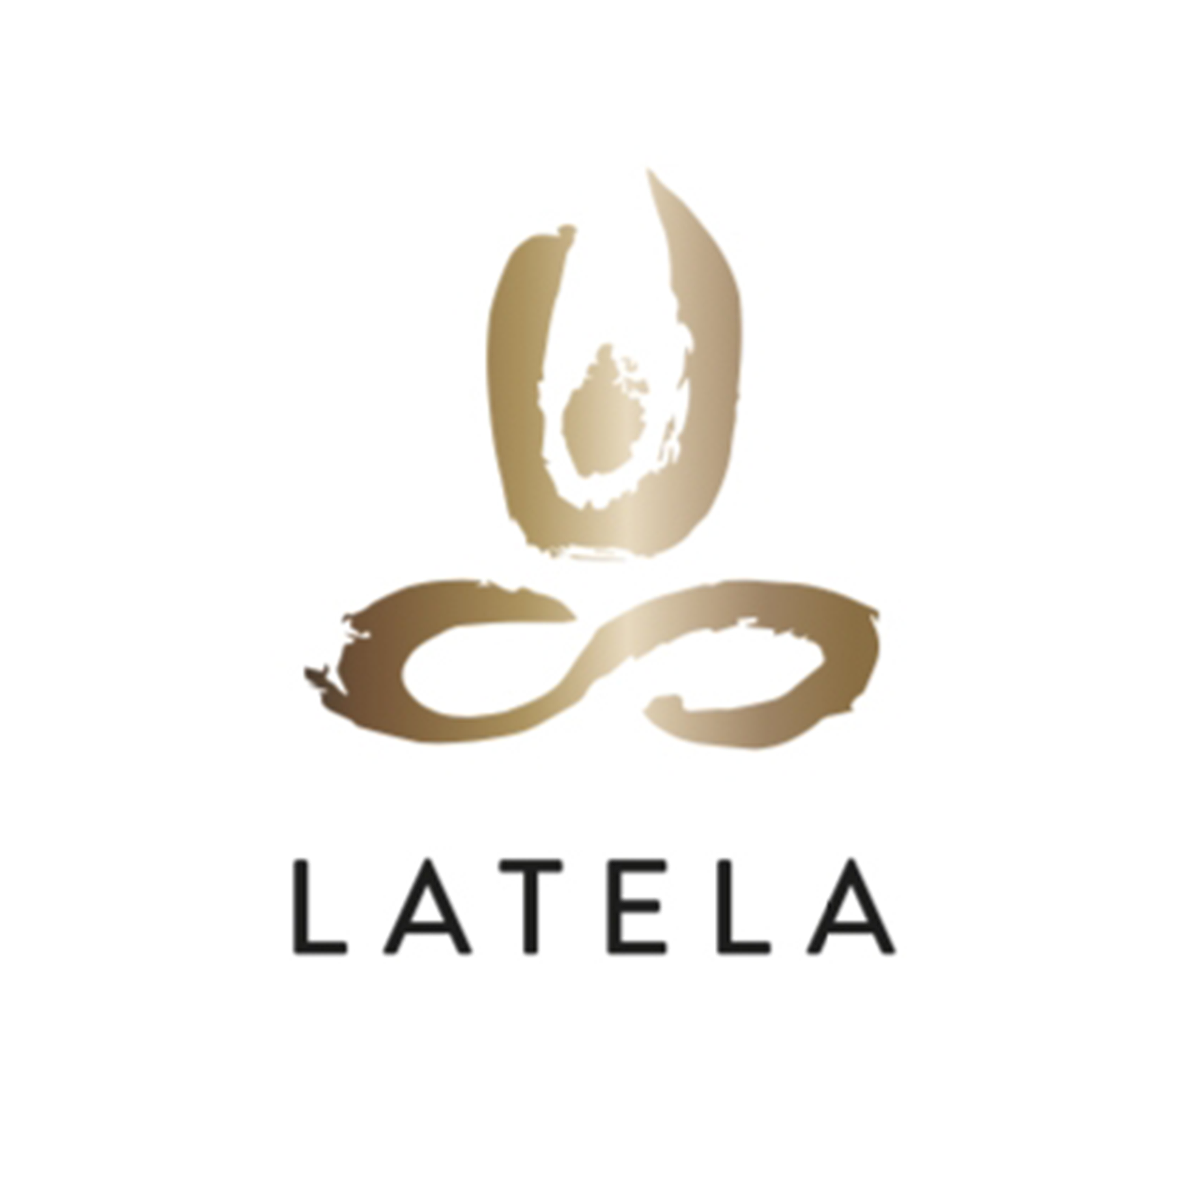 LATELA | Art Advisory, Consulting, Exhibitions and Commercial Art Gallery in Washington DC